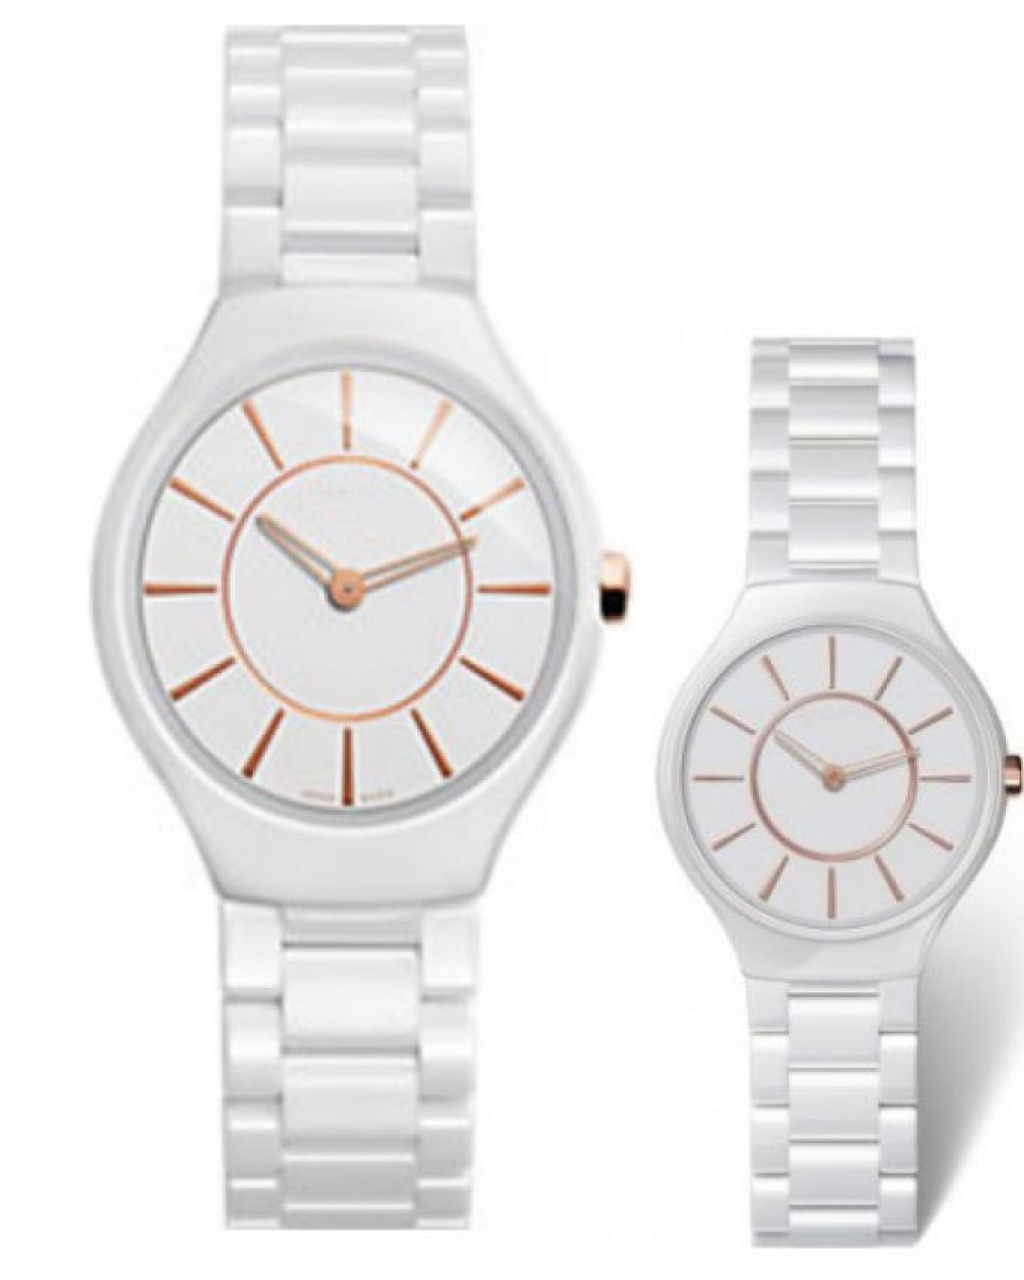 15509114860_Pack_Of_2_White_Stainless_Steel_Watch_For_Couple.jpg